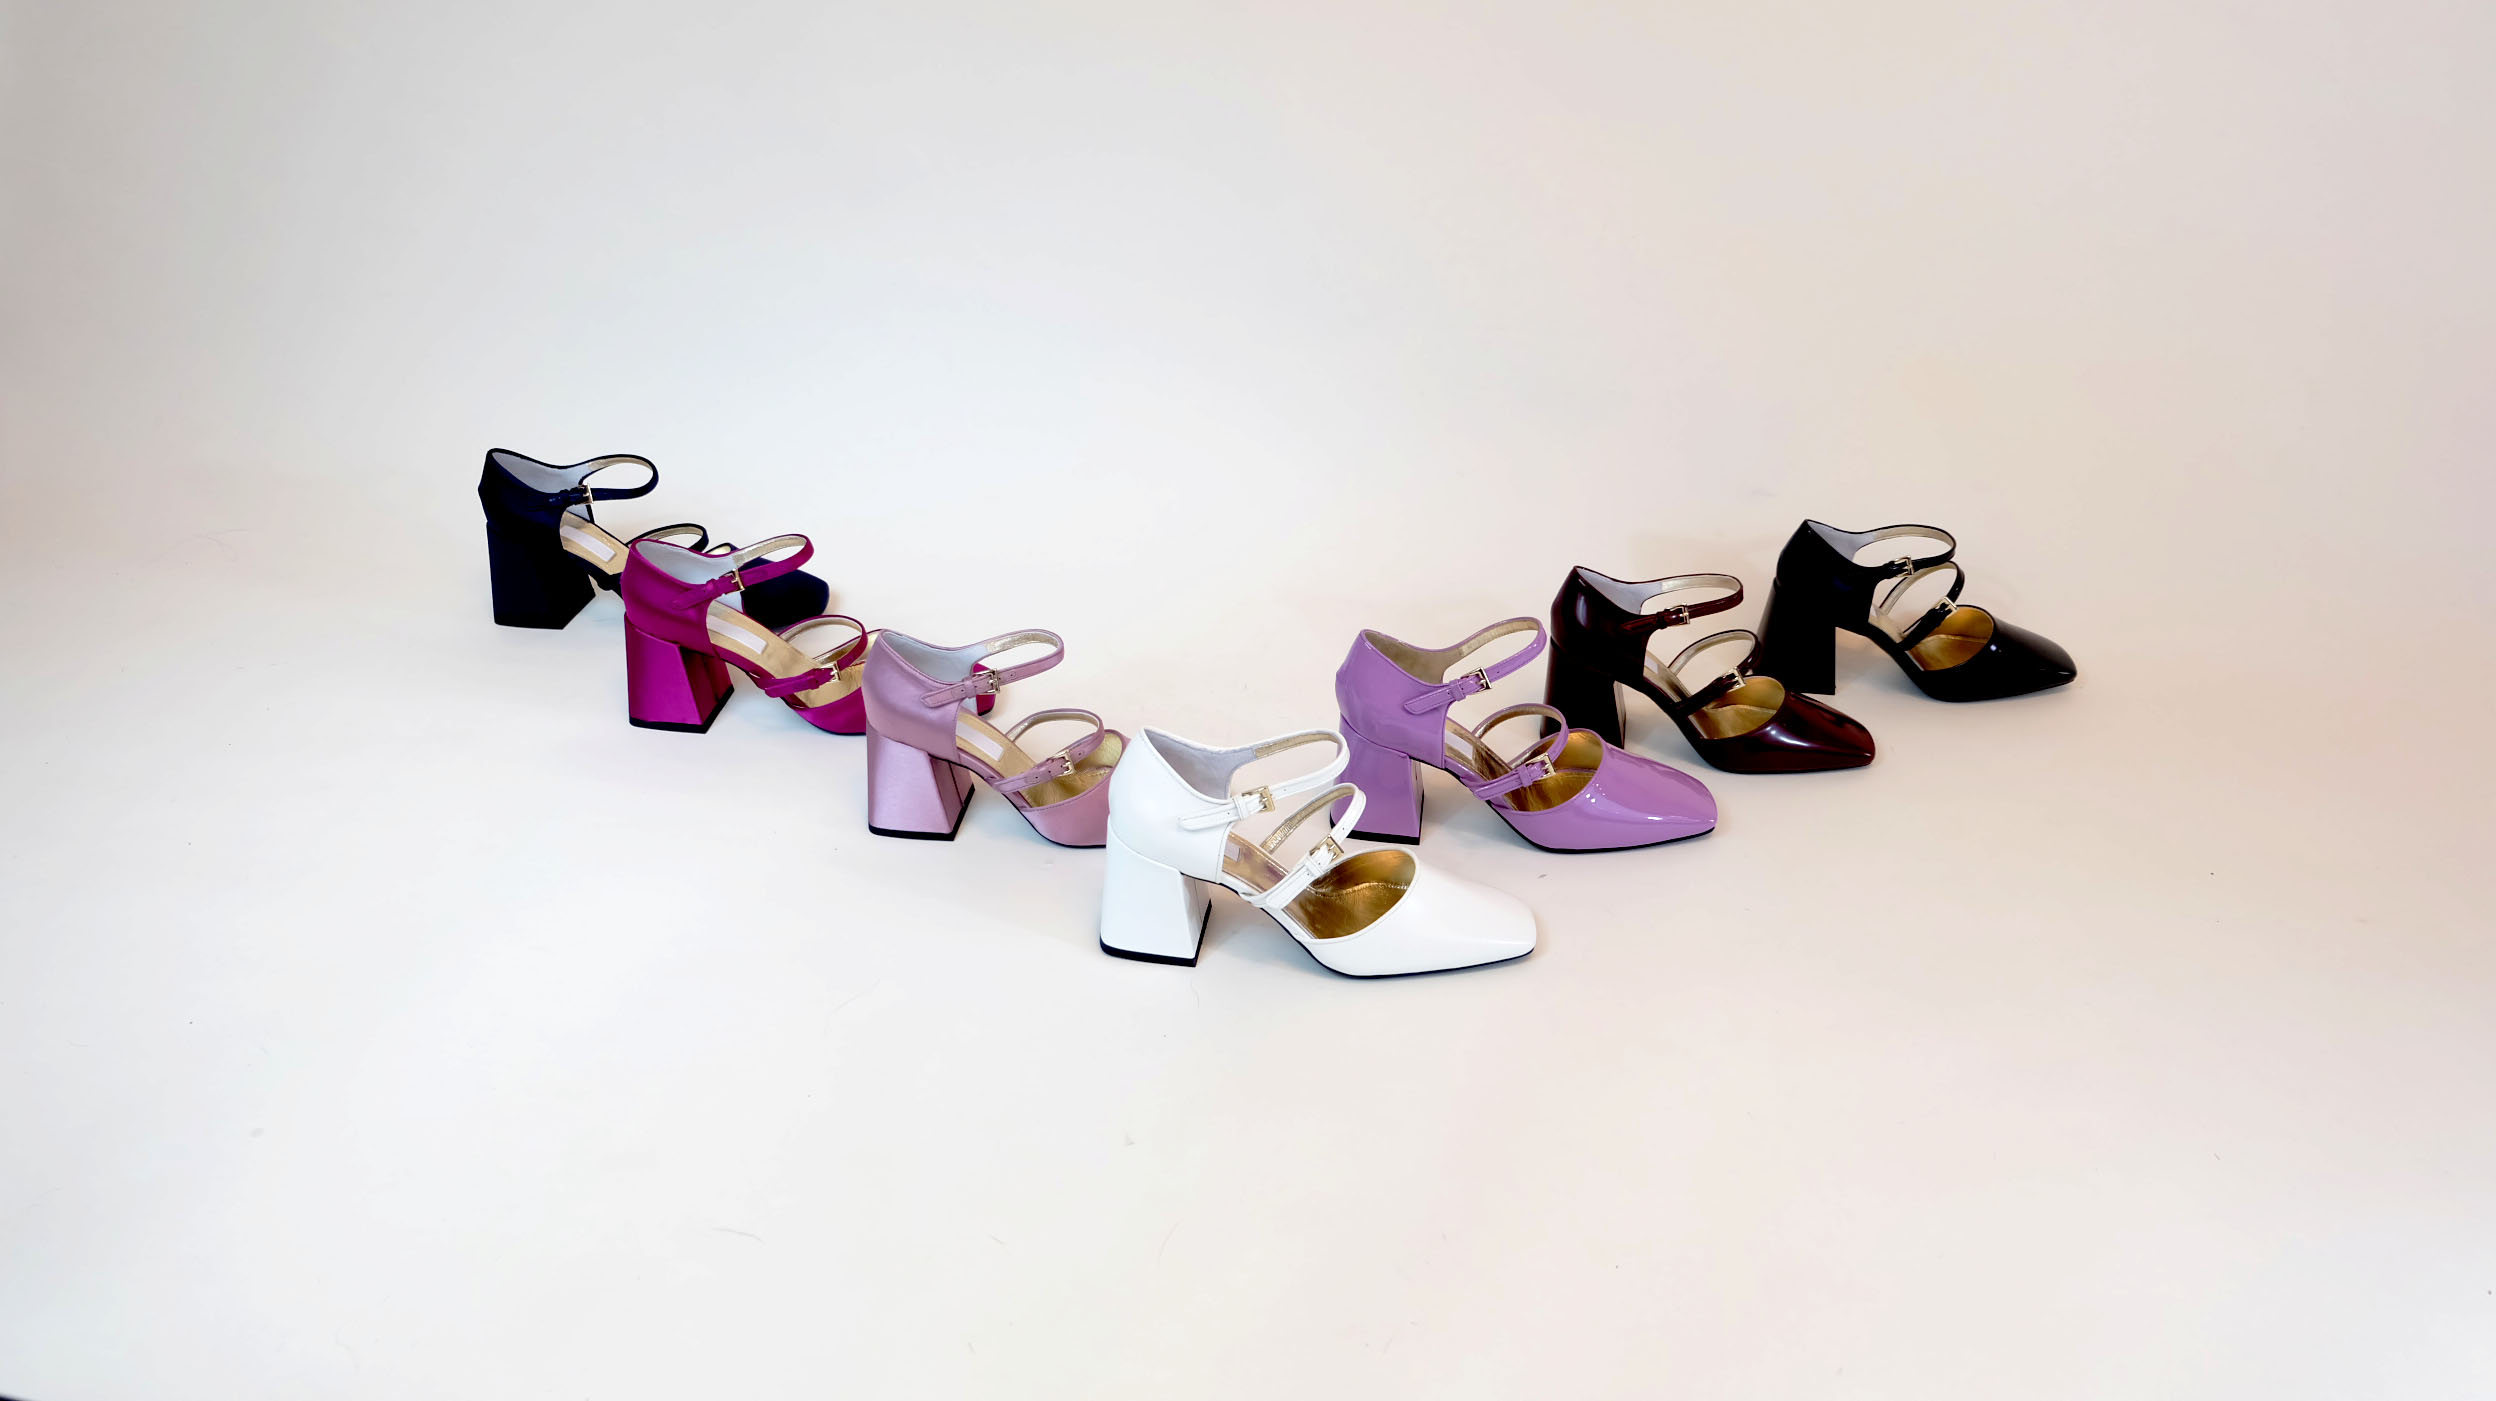 Shoes from Suzanne Rae's fall 2018 collection, priced at $500, retail.